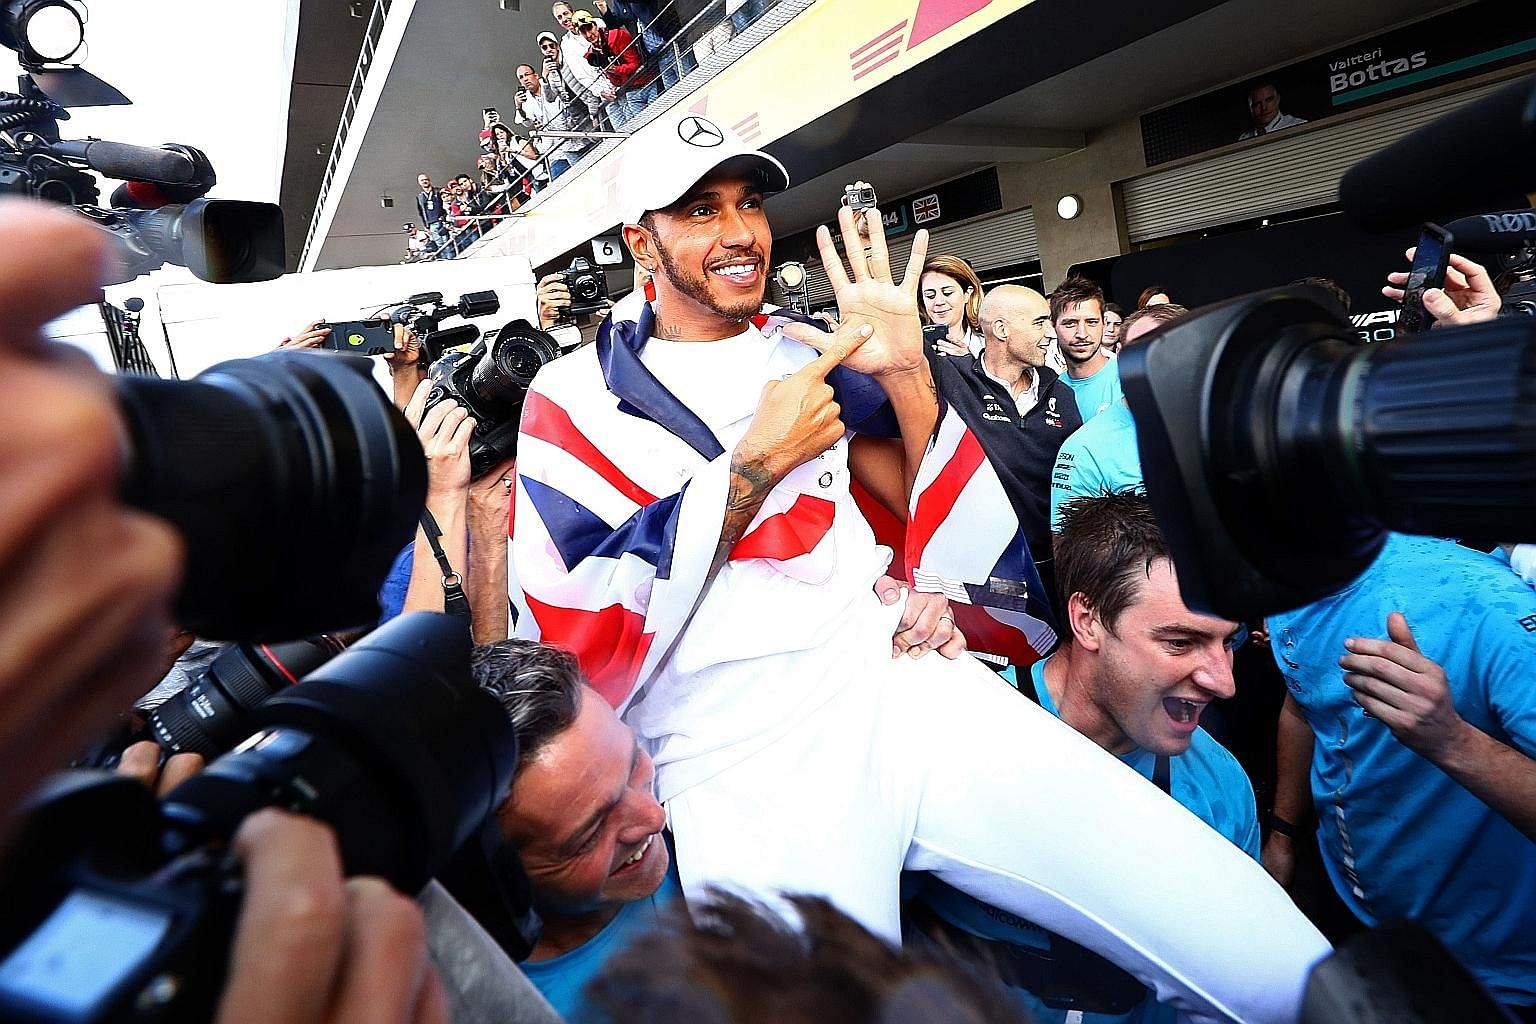 A jubilant Lewis Hamilton after wrapping up his fifth Formula One title at the Mexican Grand Prix on Sunday. He is now two titles away from matching Michael Schumacher.